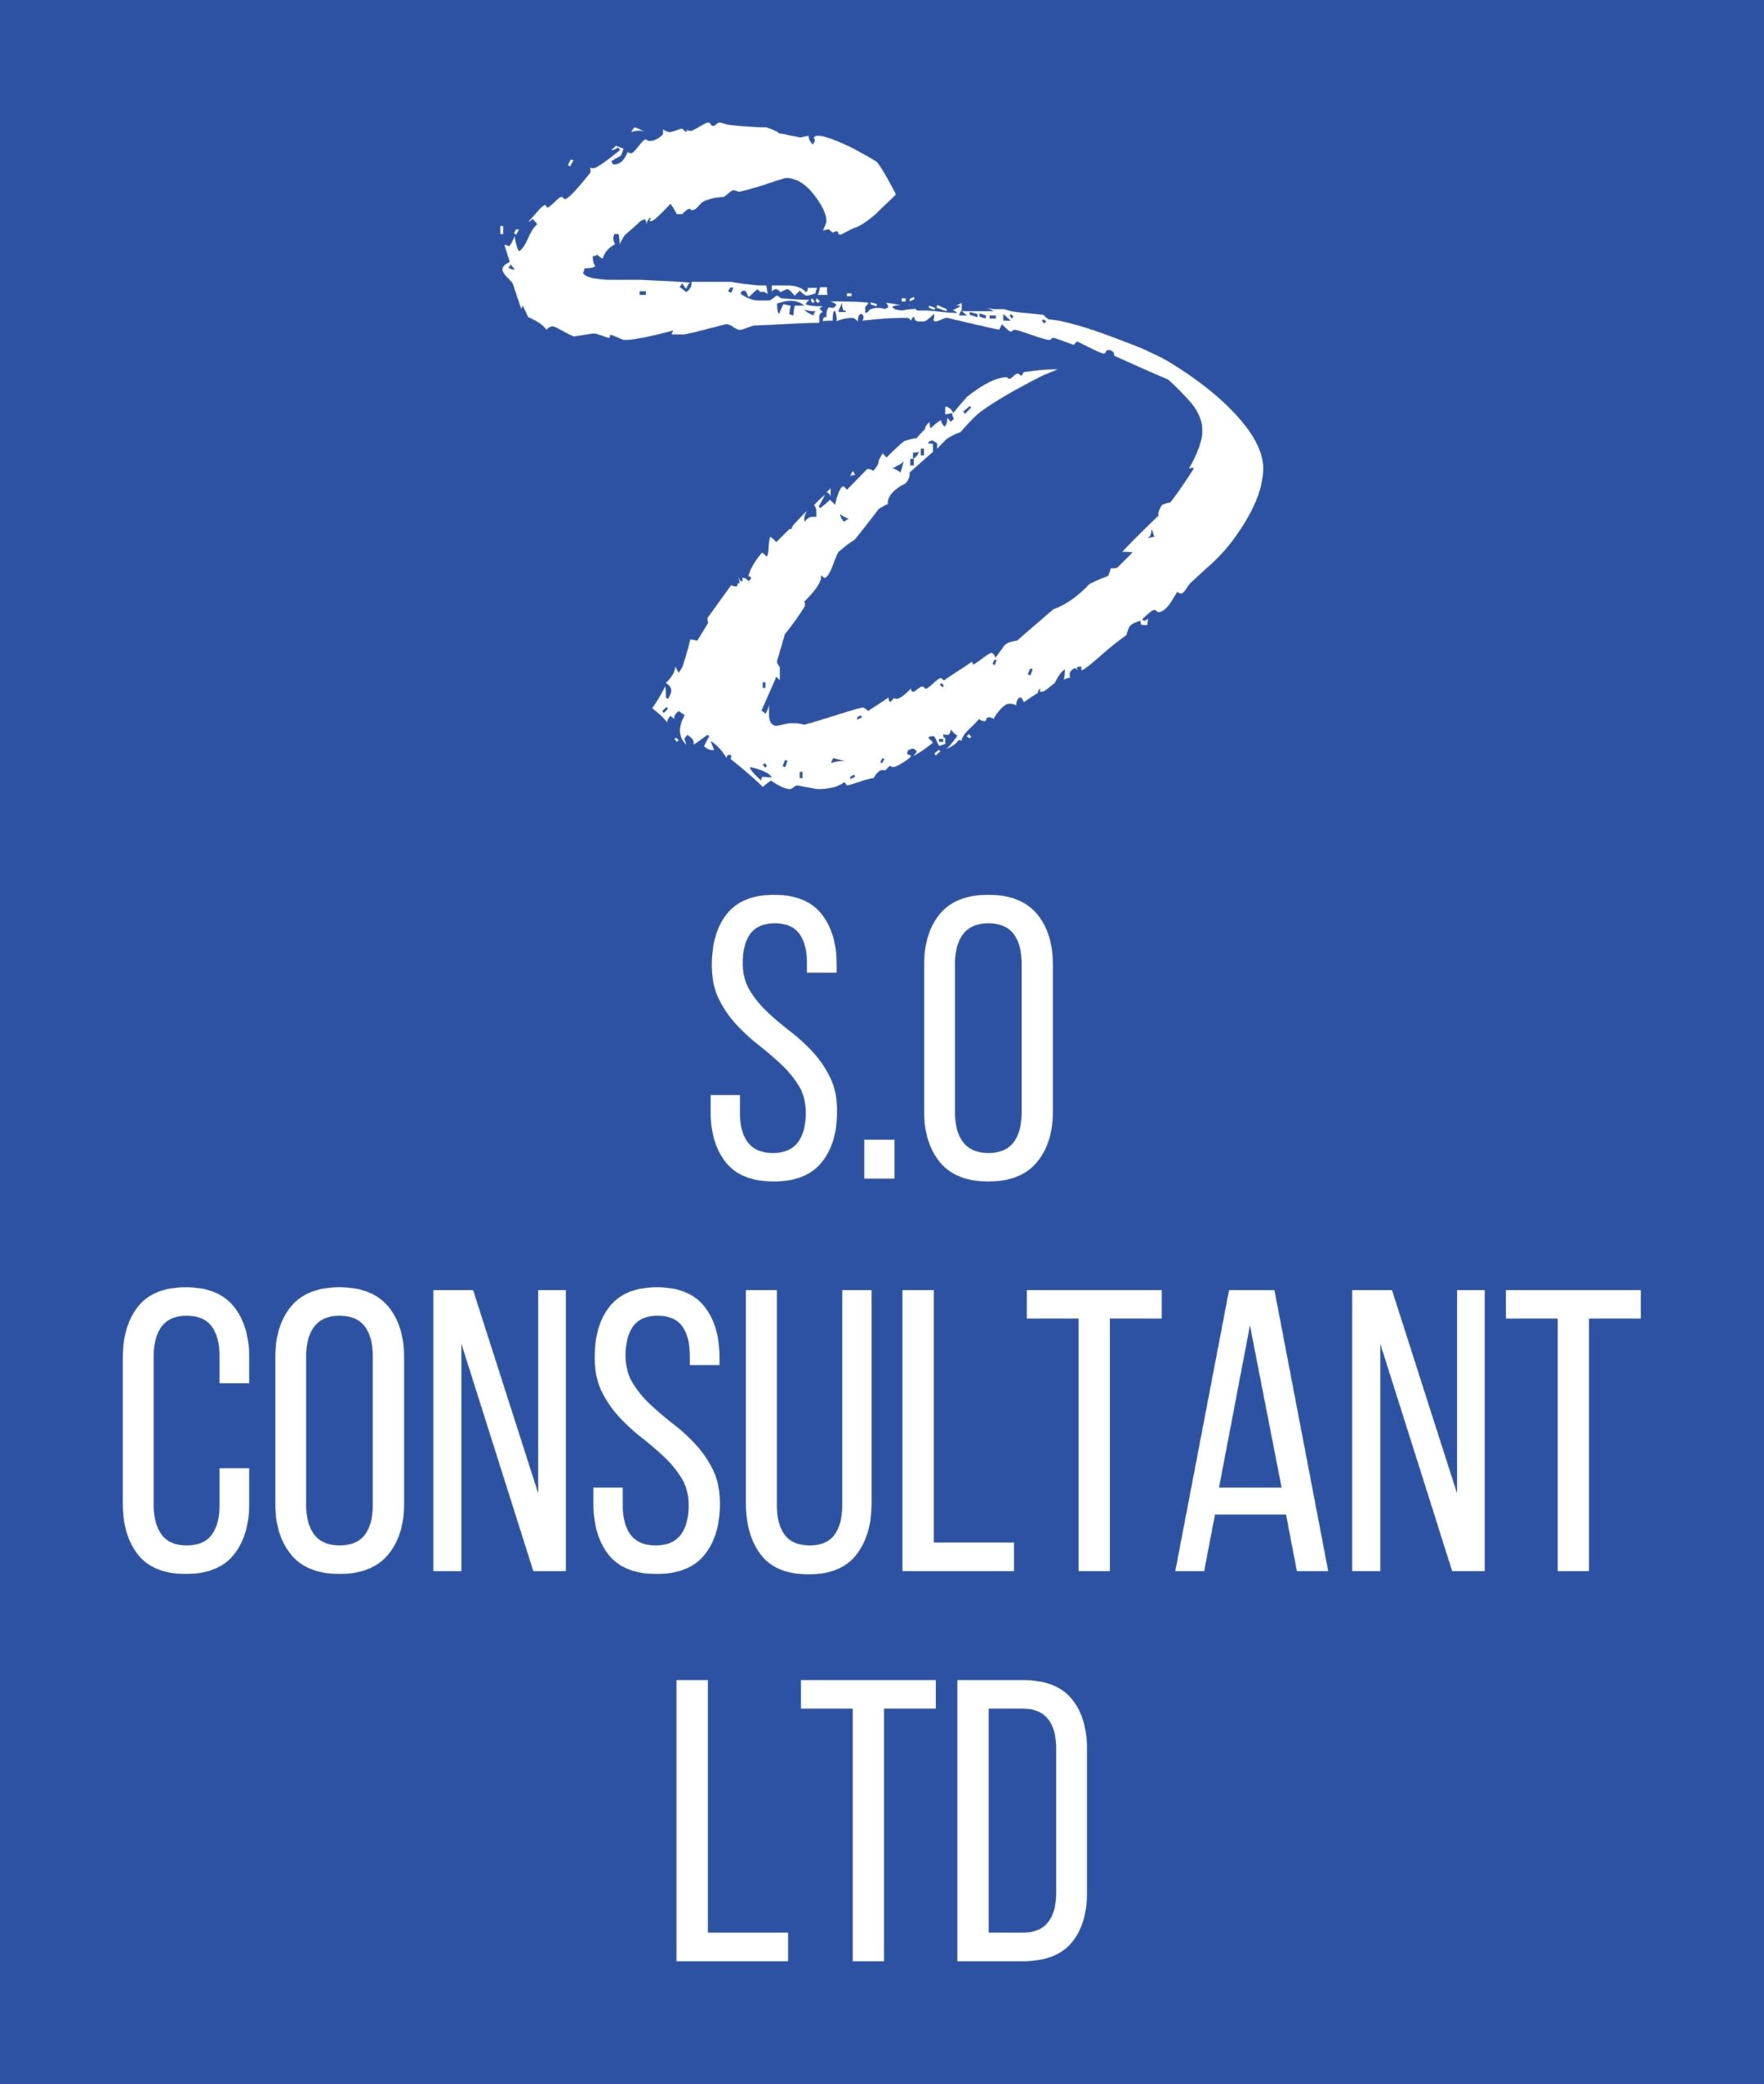 S O Consultant Services - Best Marketing Consultants in London